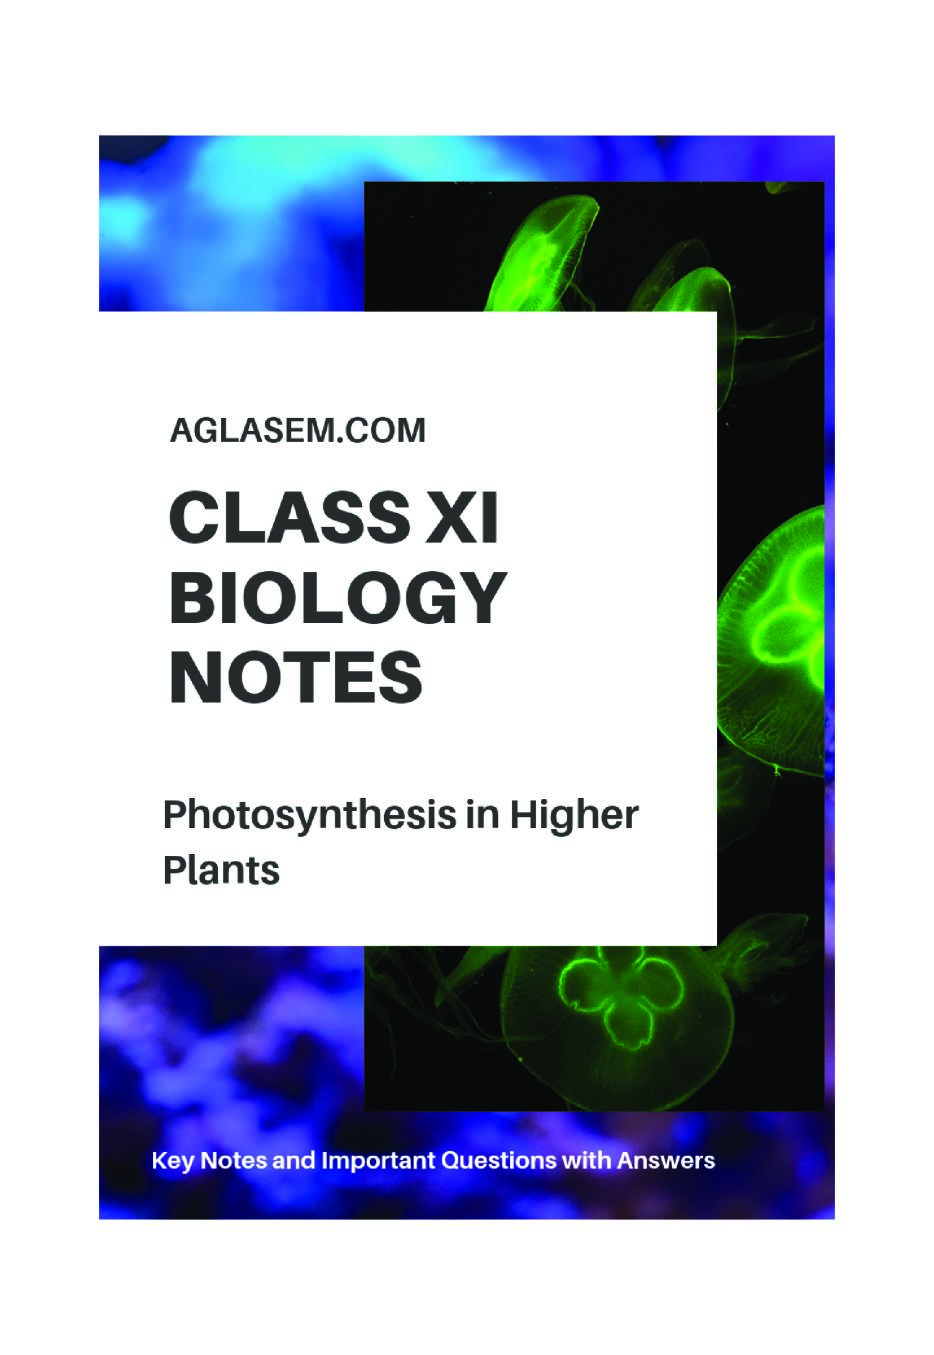 Class 11 Biology Notes for Photosynthesis in Higher Plants